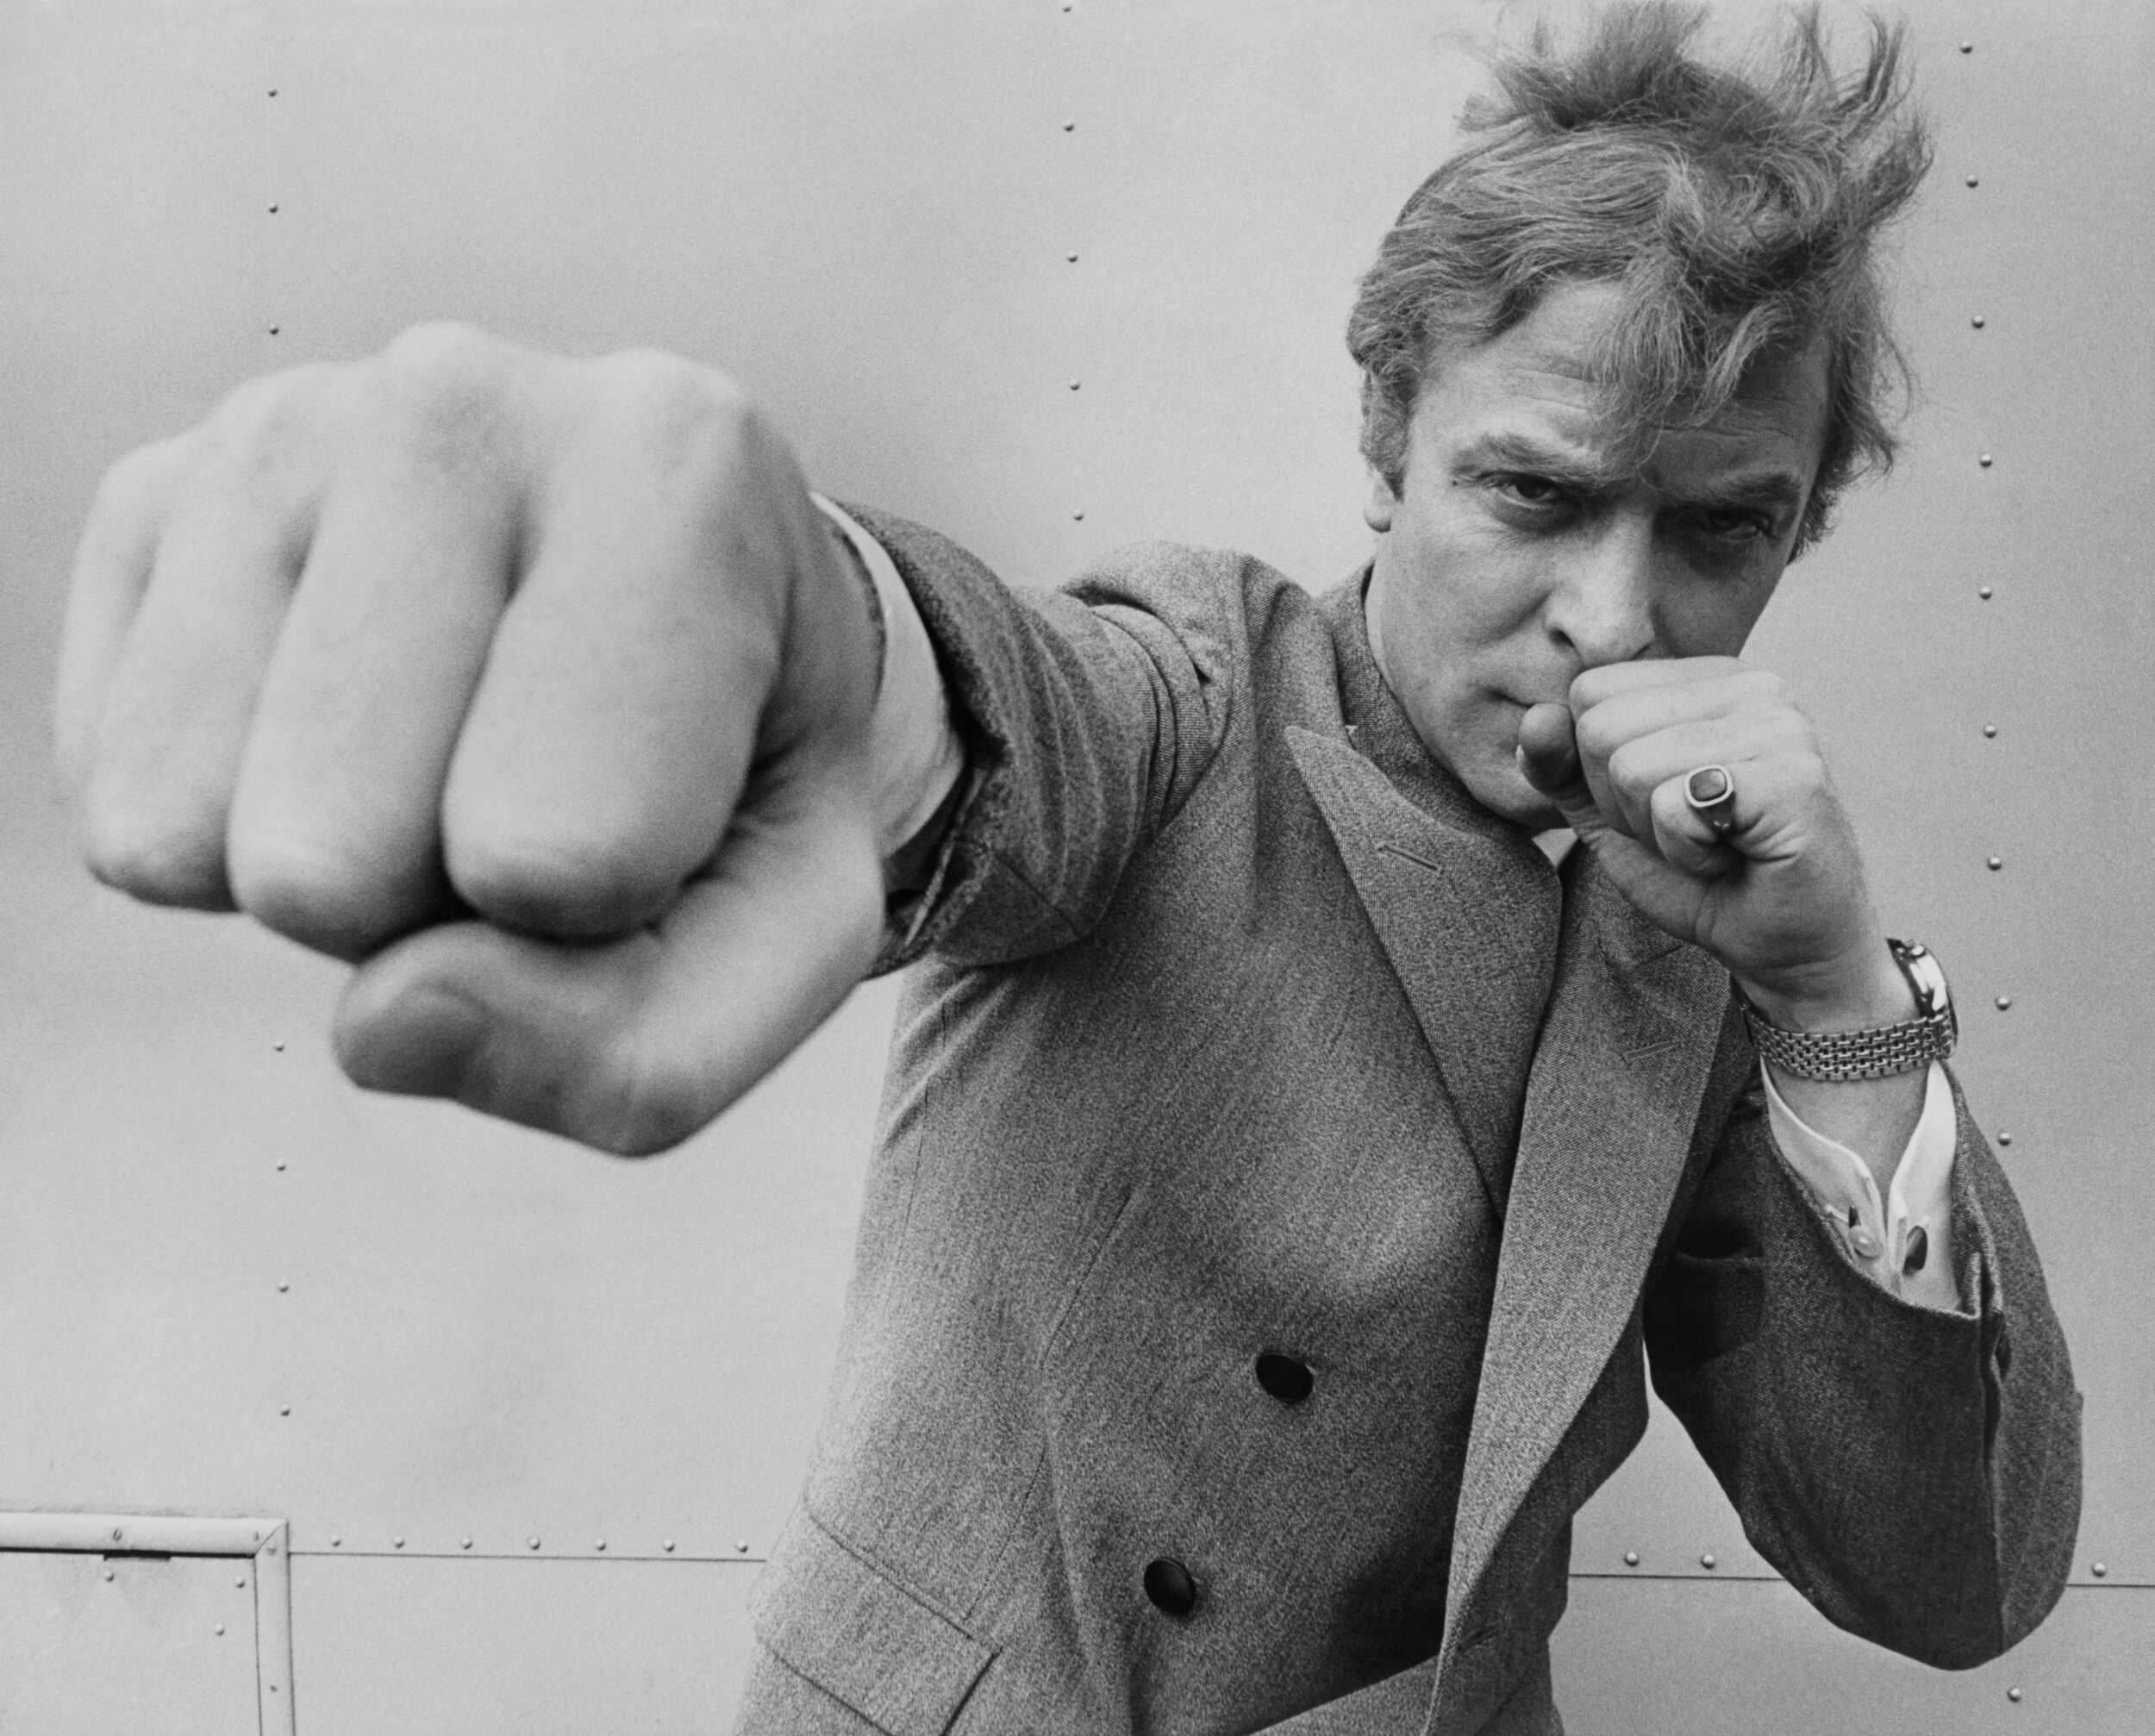 GETTY_IMAGES_2662385_MICHAEL_CAINE_PUNCH_1966.jpg